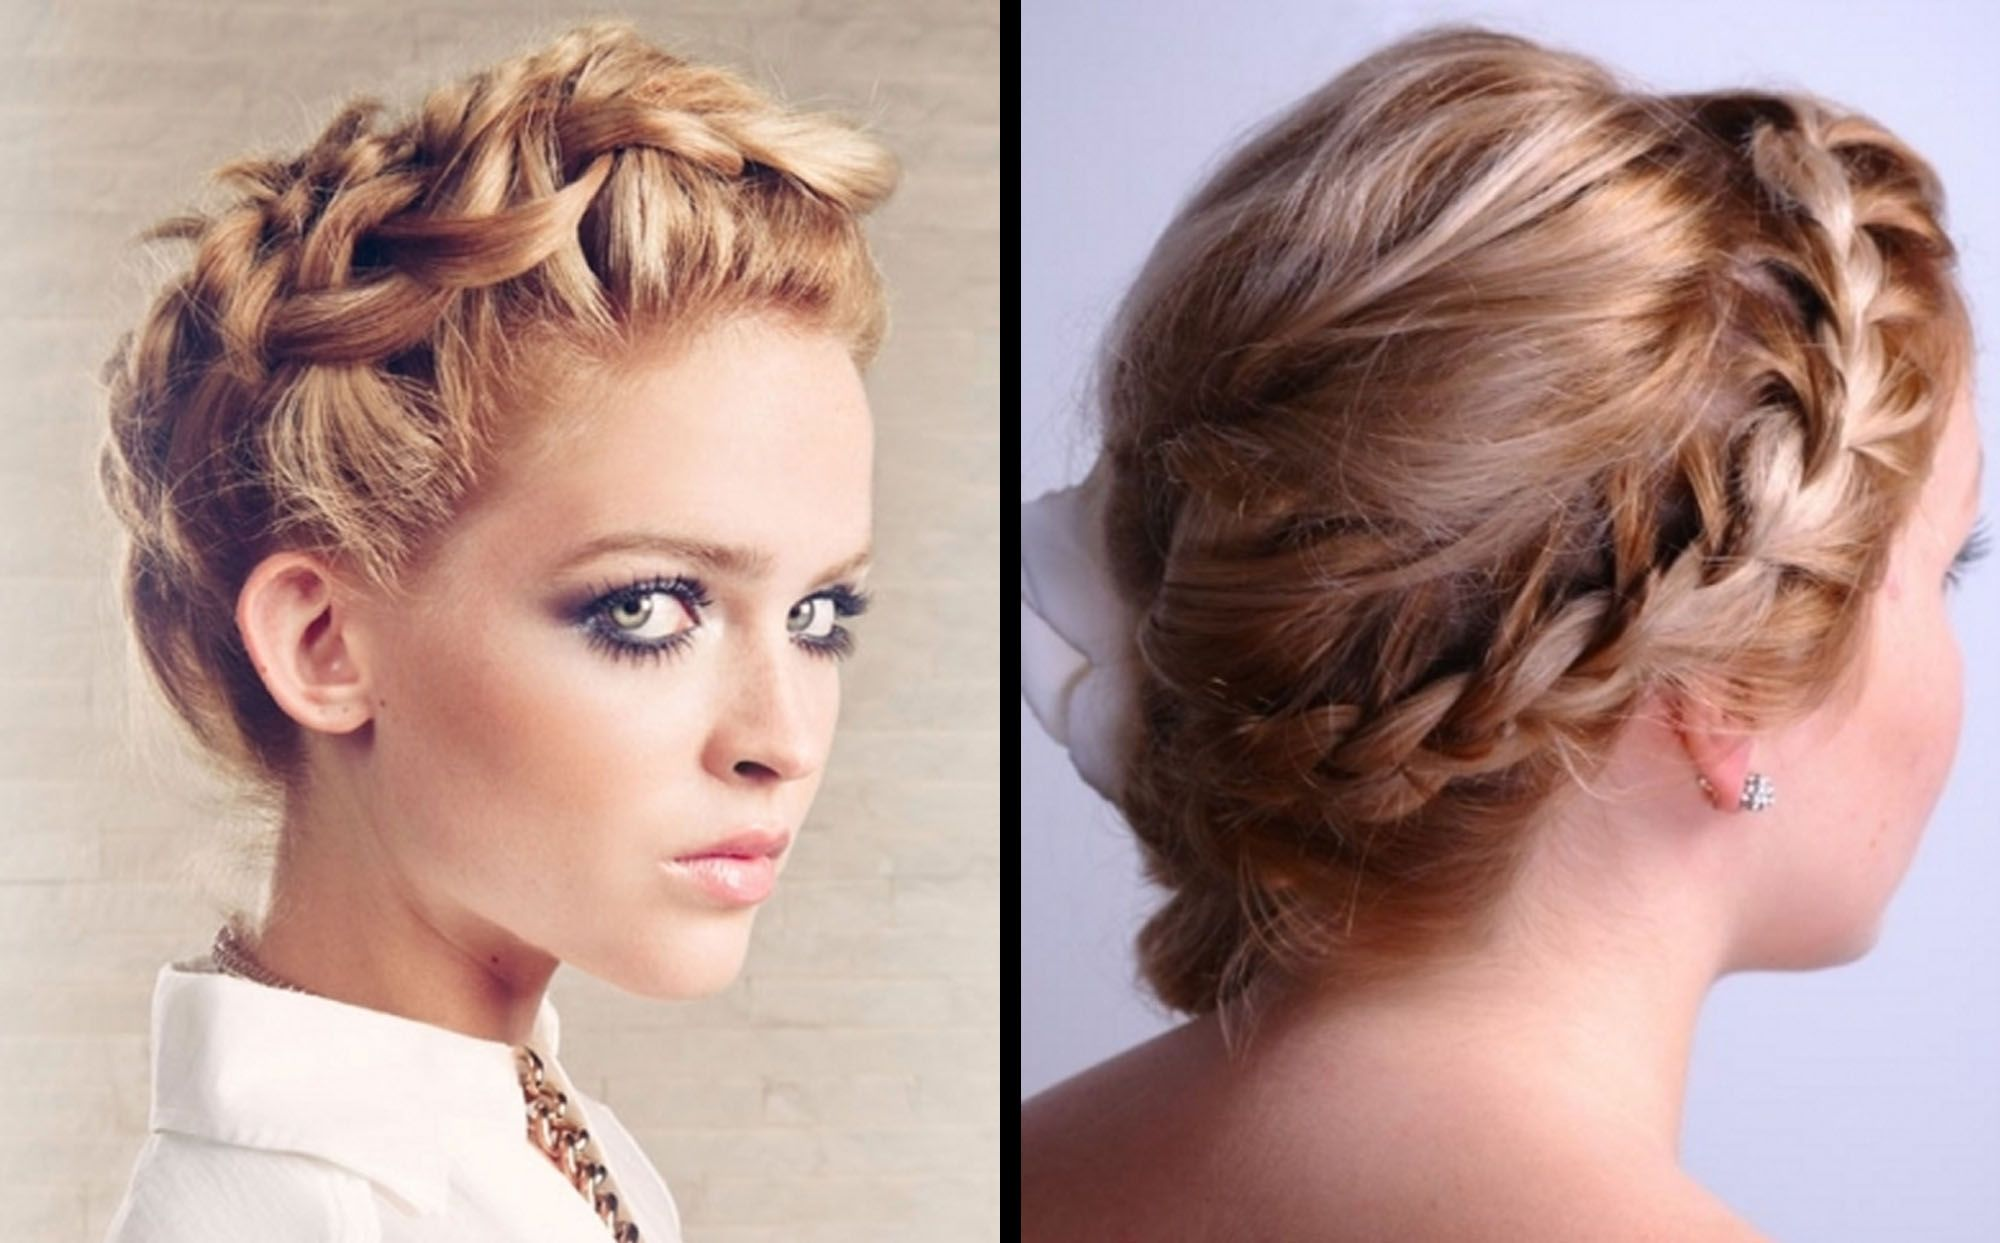 Formal Hairstyles of Braided Updo Hairstyles as Wedding Hairdo by